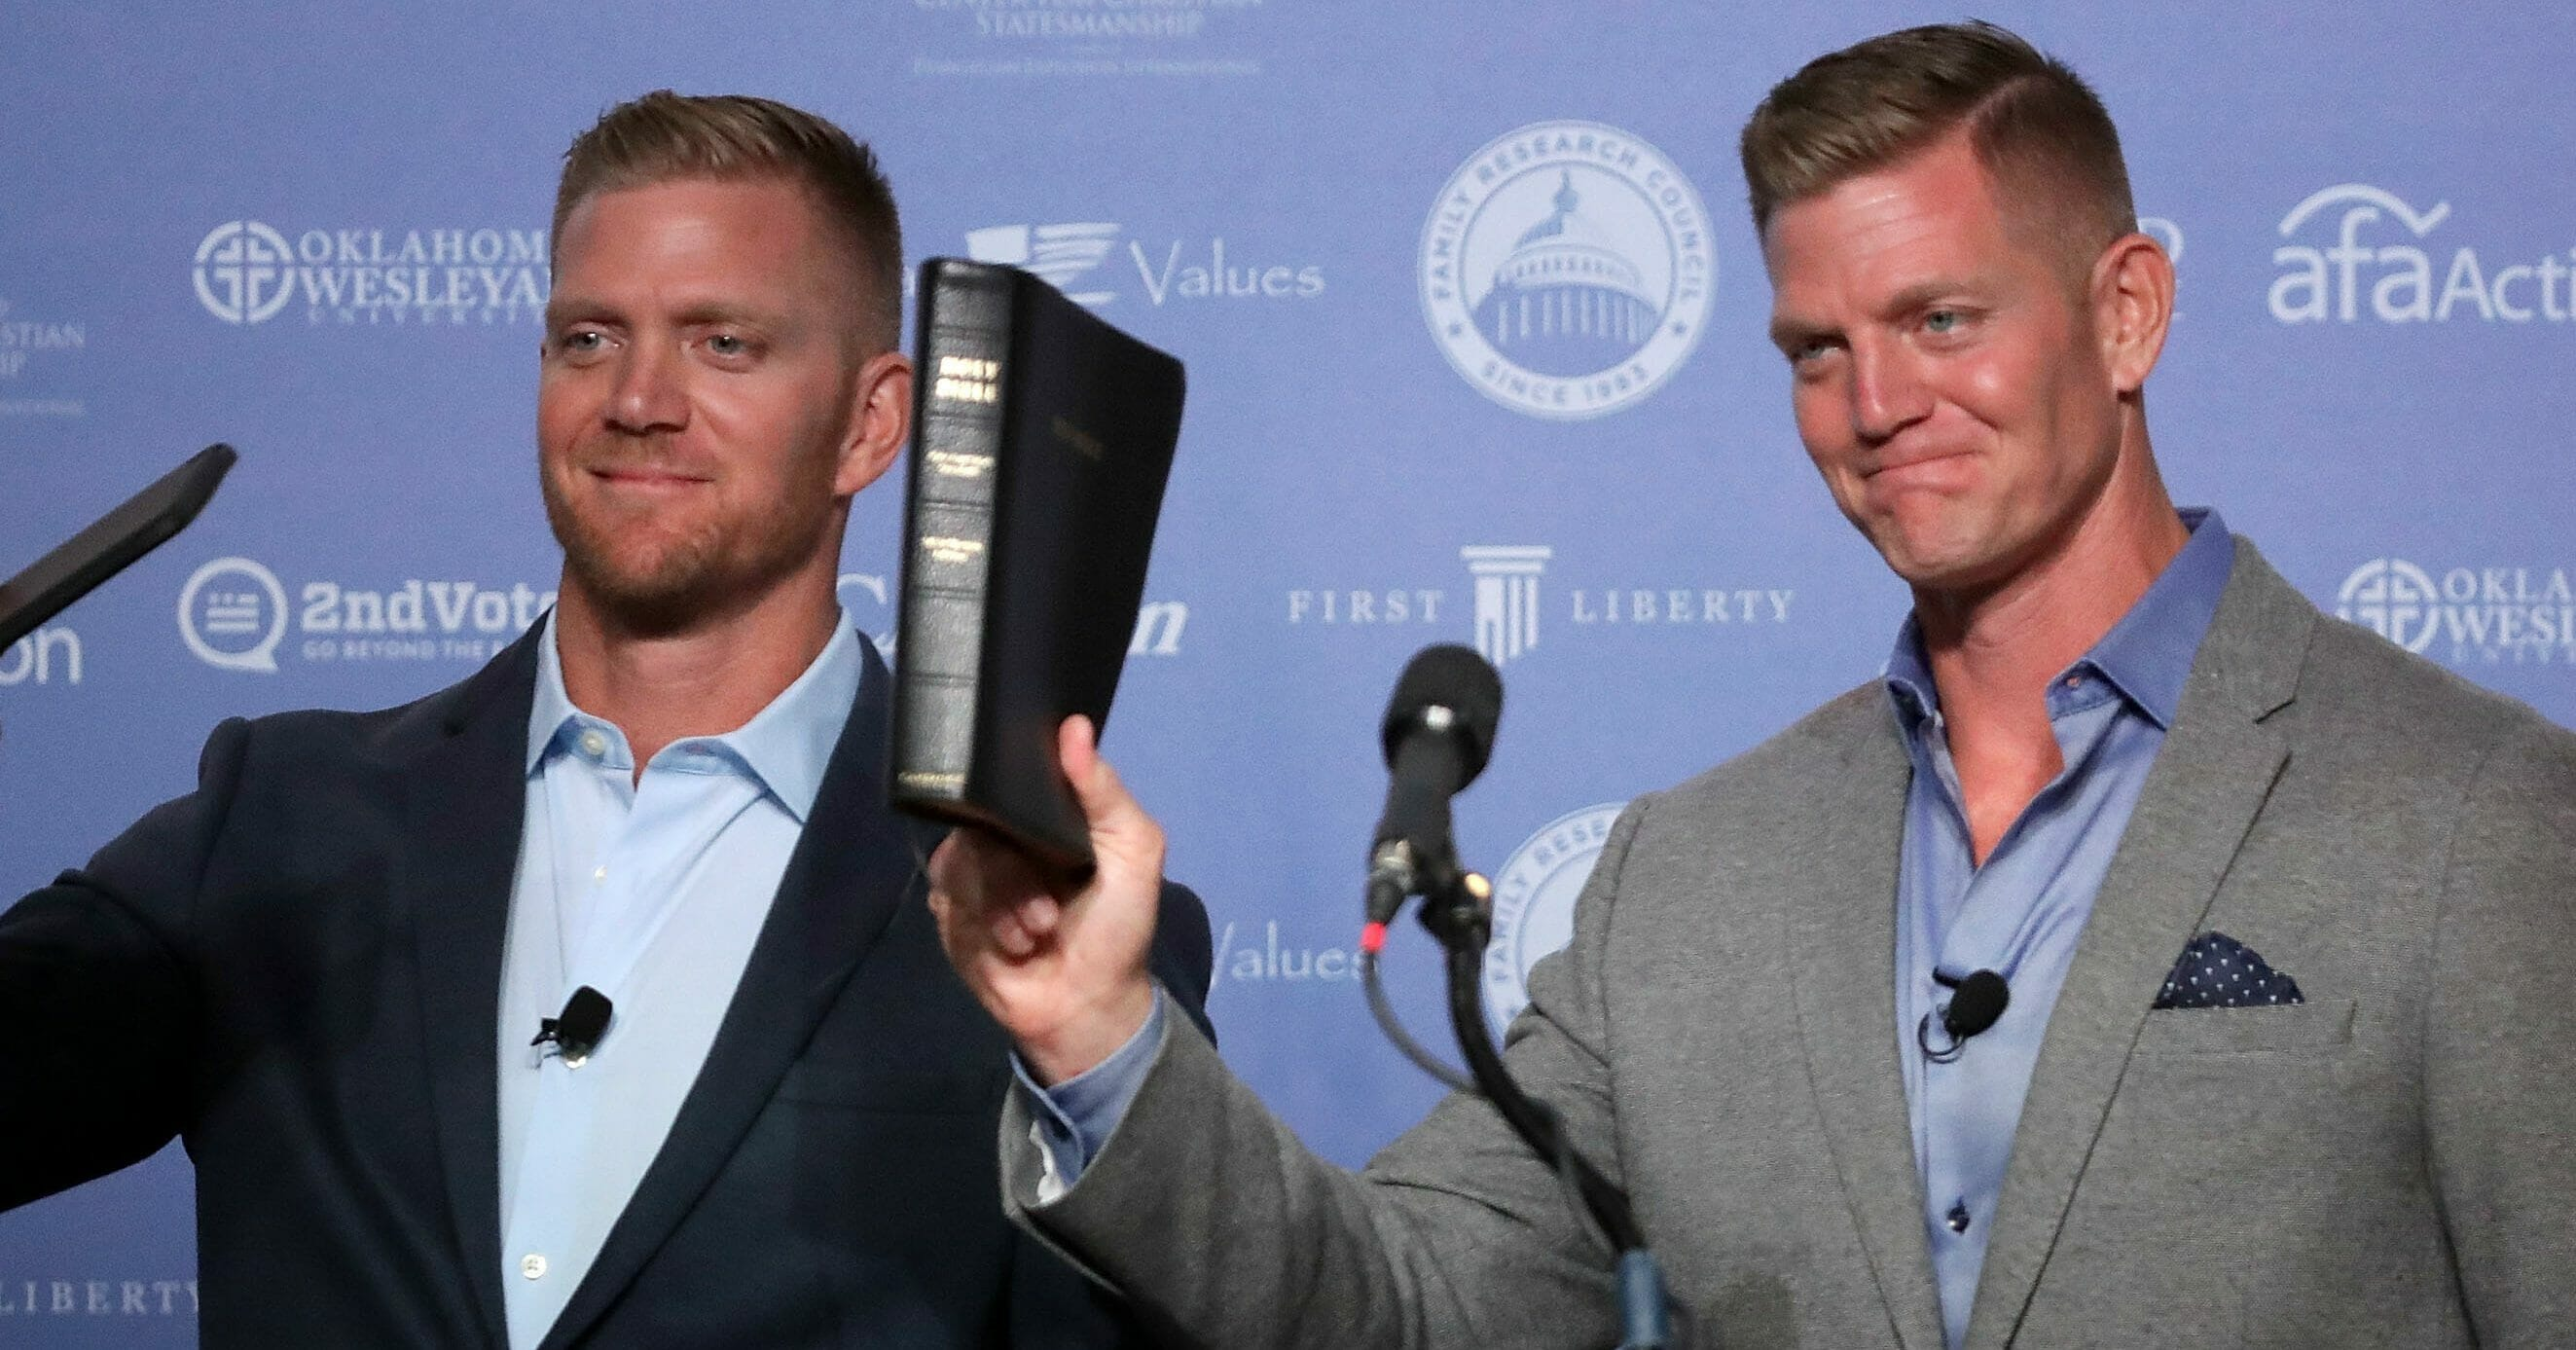 Twin brothers David and Jason Benham address the Values Voter Summit at the Omni Shoreham September 9, 2016 in Washington, DC. Hosted by the Family Research Council